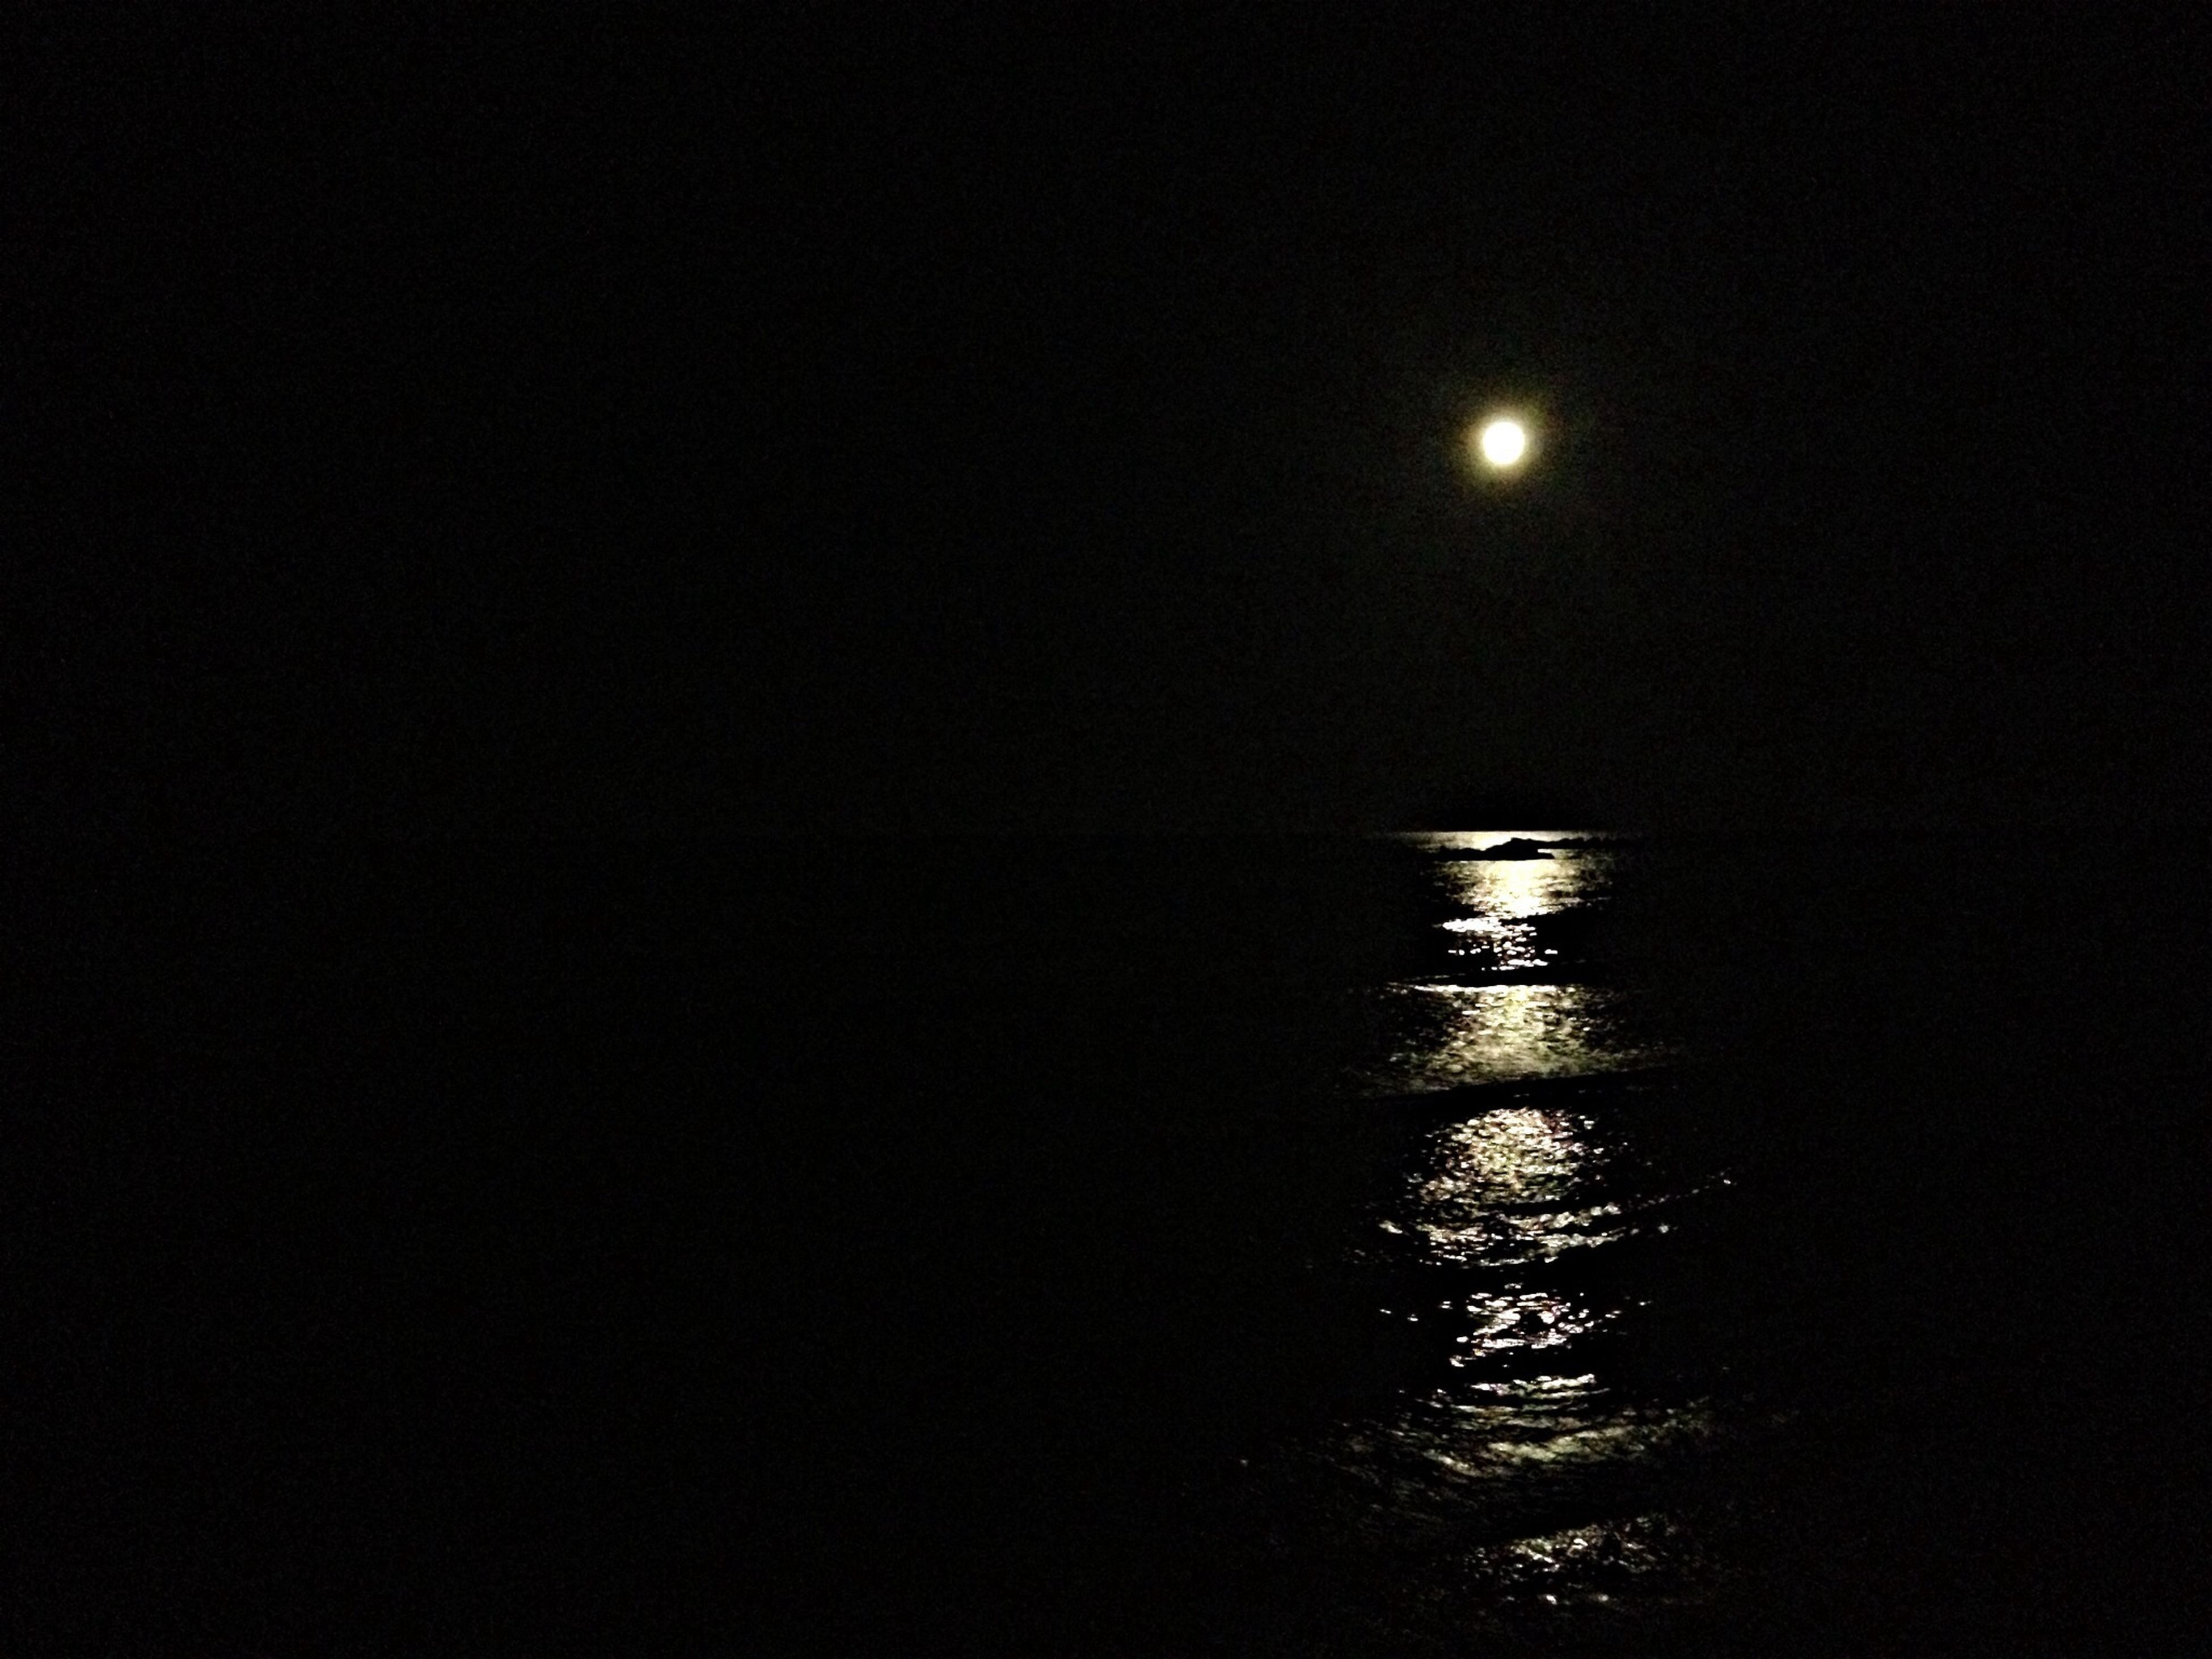 night, moon, tranquility, tranquil scene, scenics, beauty in nature, copy space, water, astronomy, nature, clear sky, sky, reflection, full moon, idyllic, dark, illuminated, silhouette, moonlight, waterfront